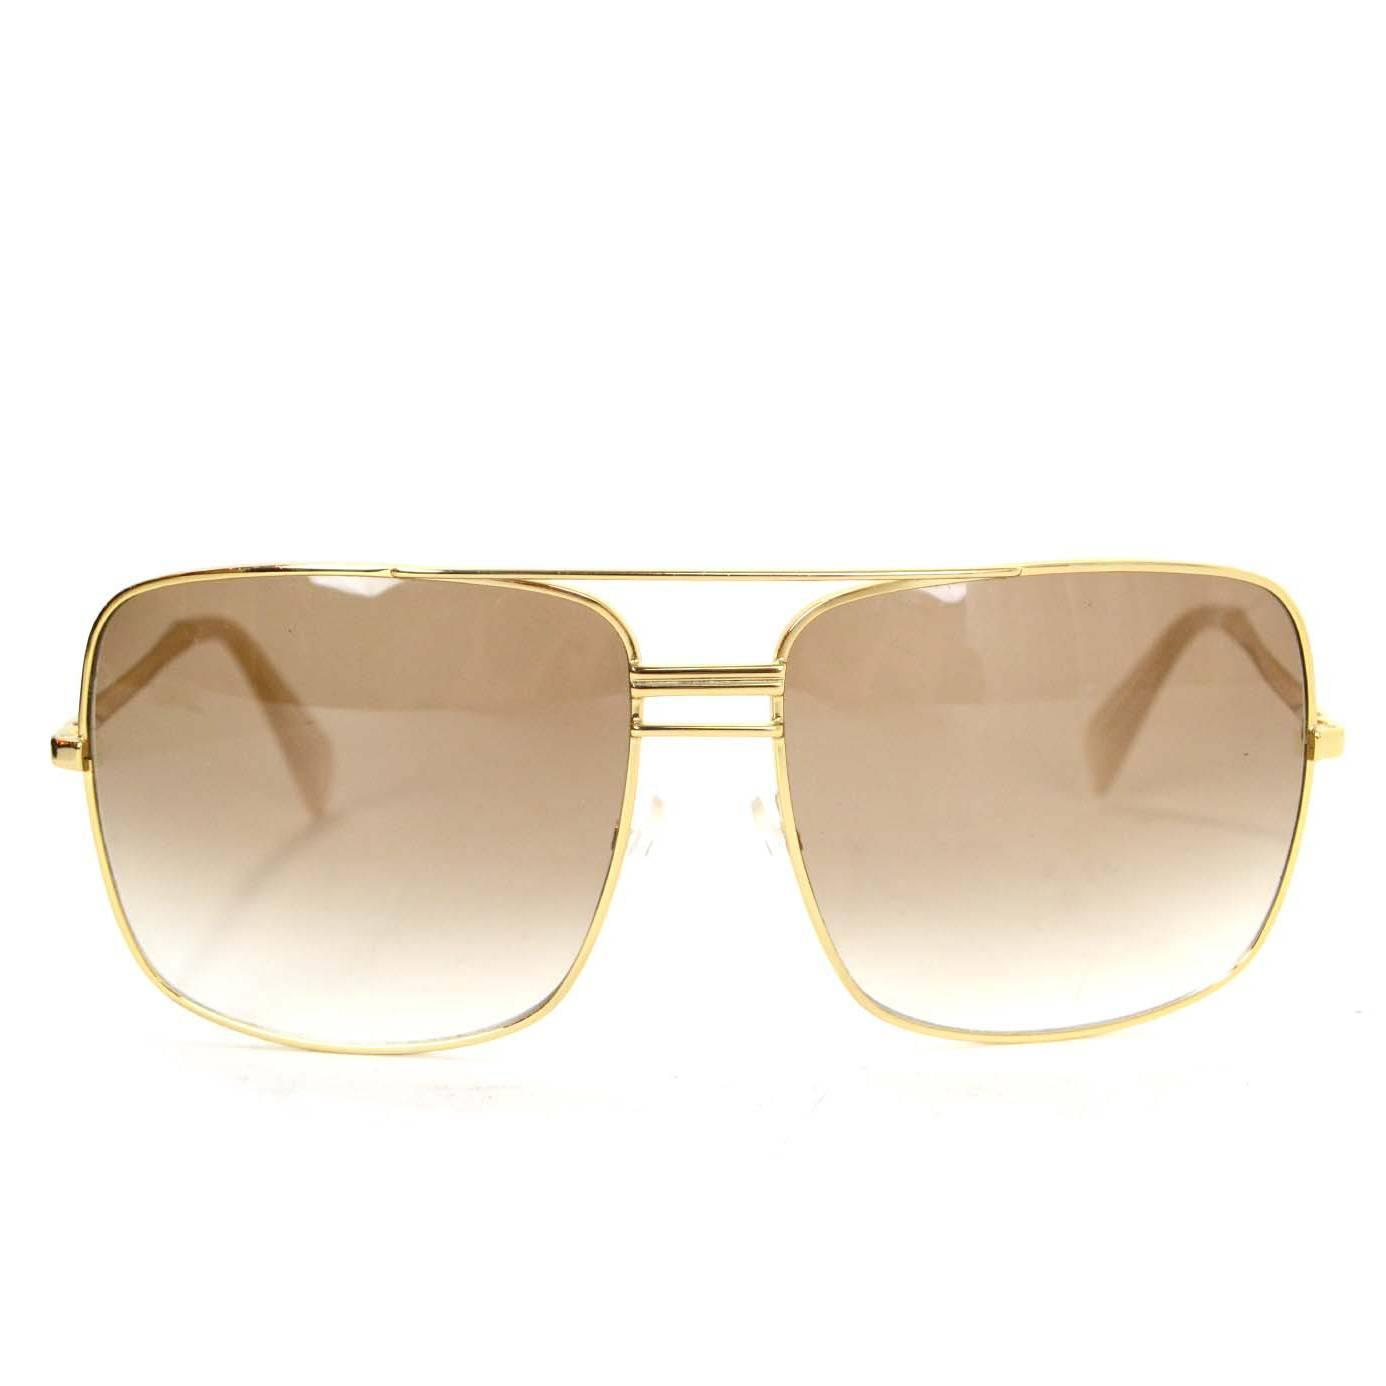 Gold Frame Celine Sunglasses : Celine Gold CL41808/S Aviator Sunglasses For Sale at 1stdibs